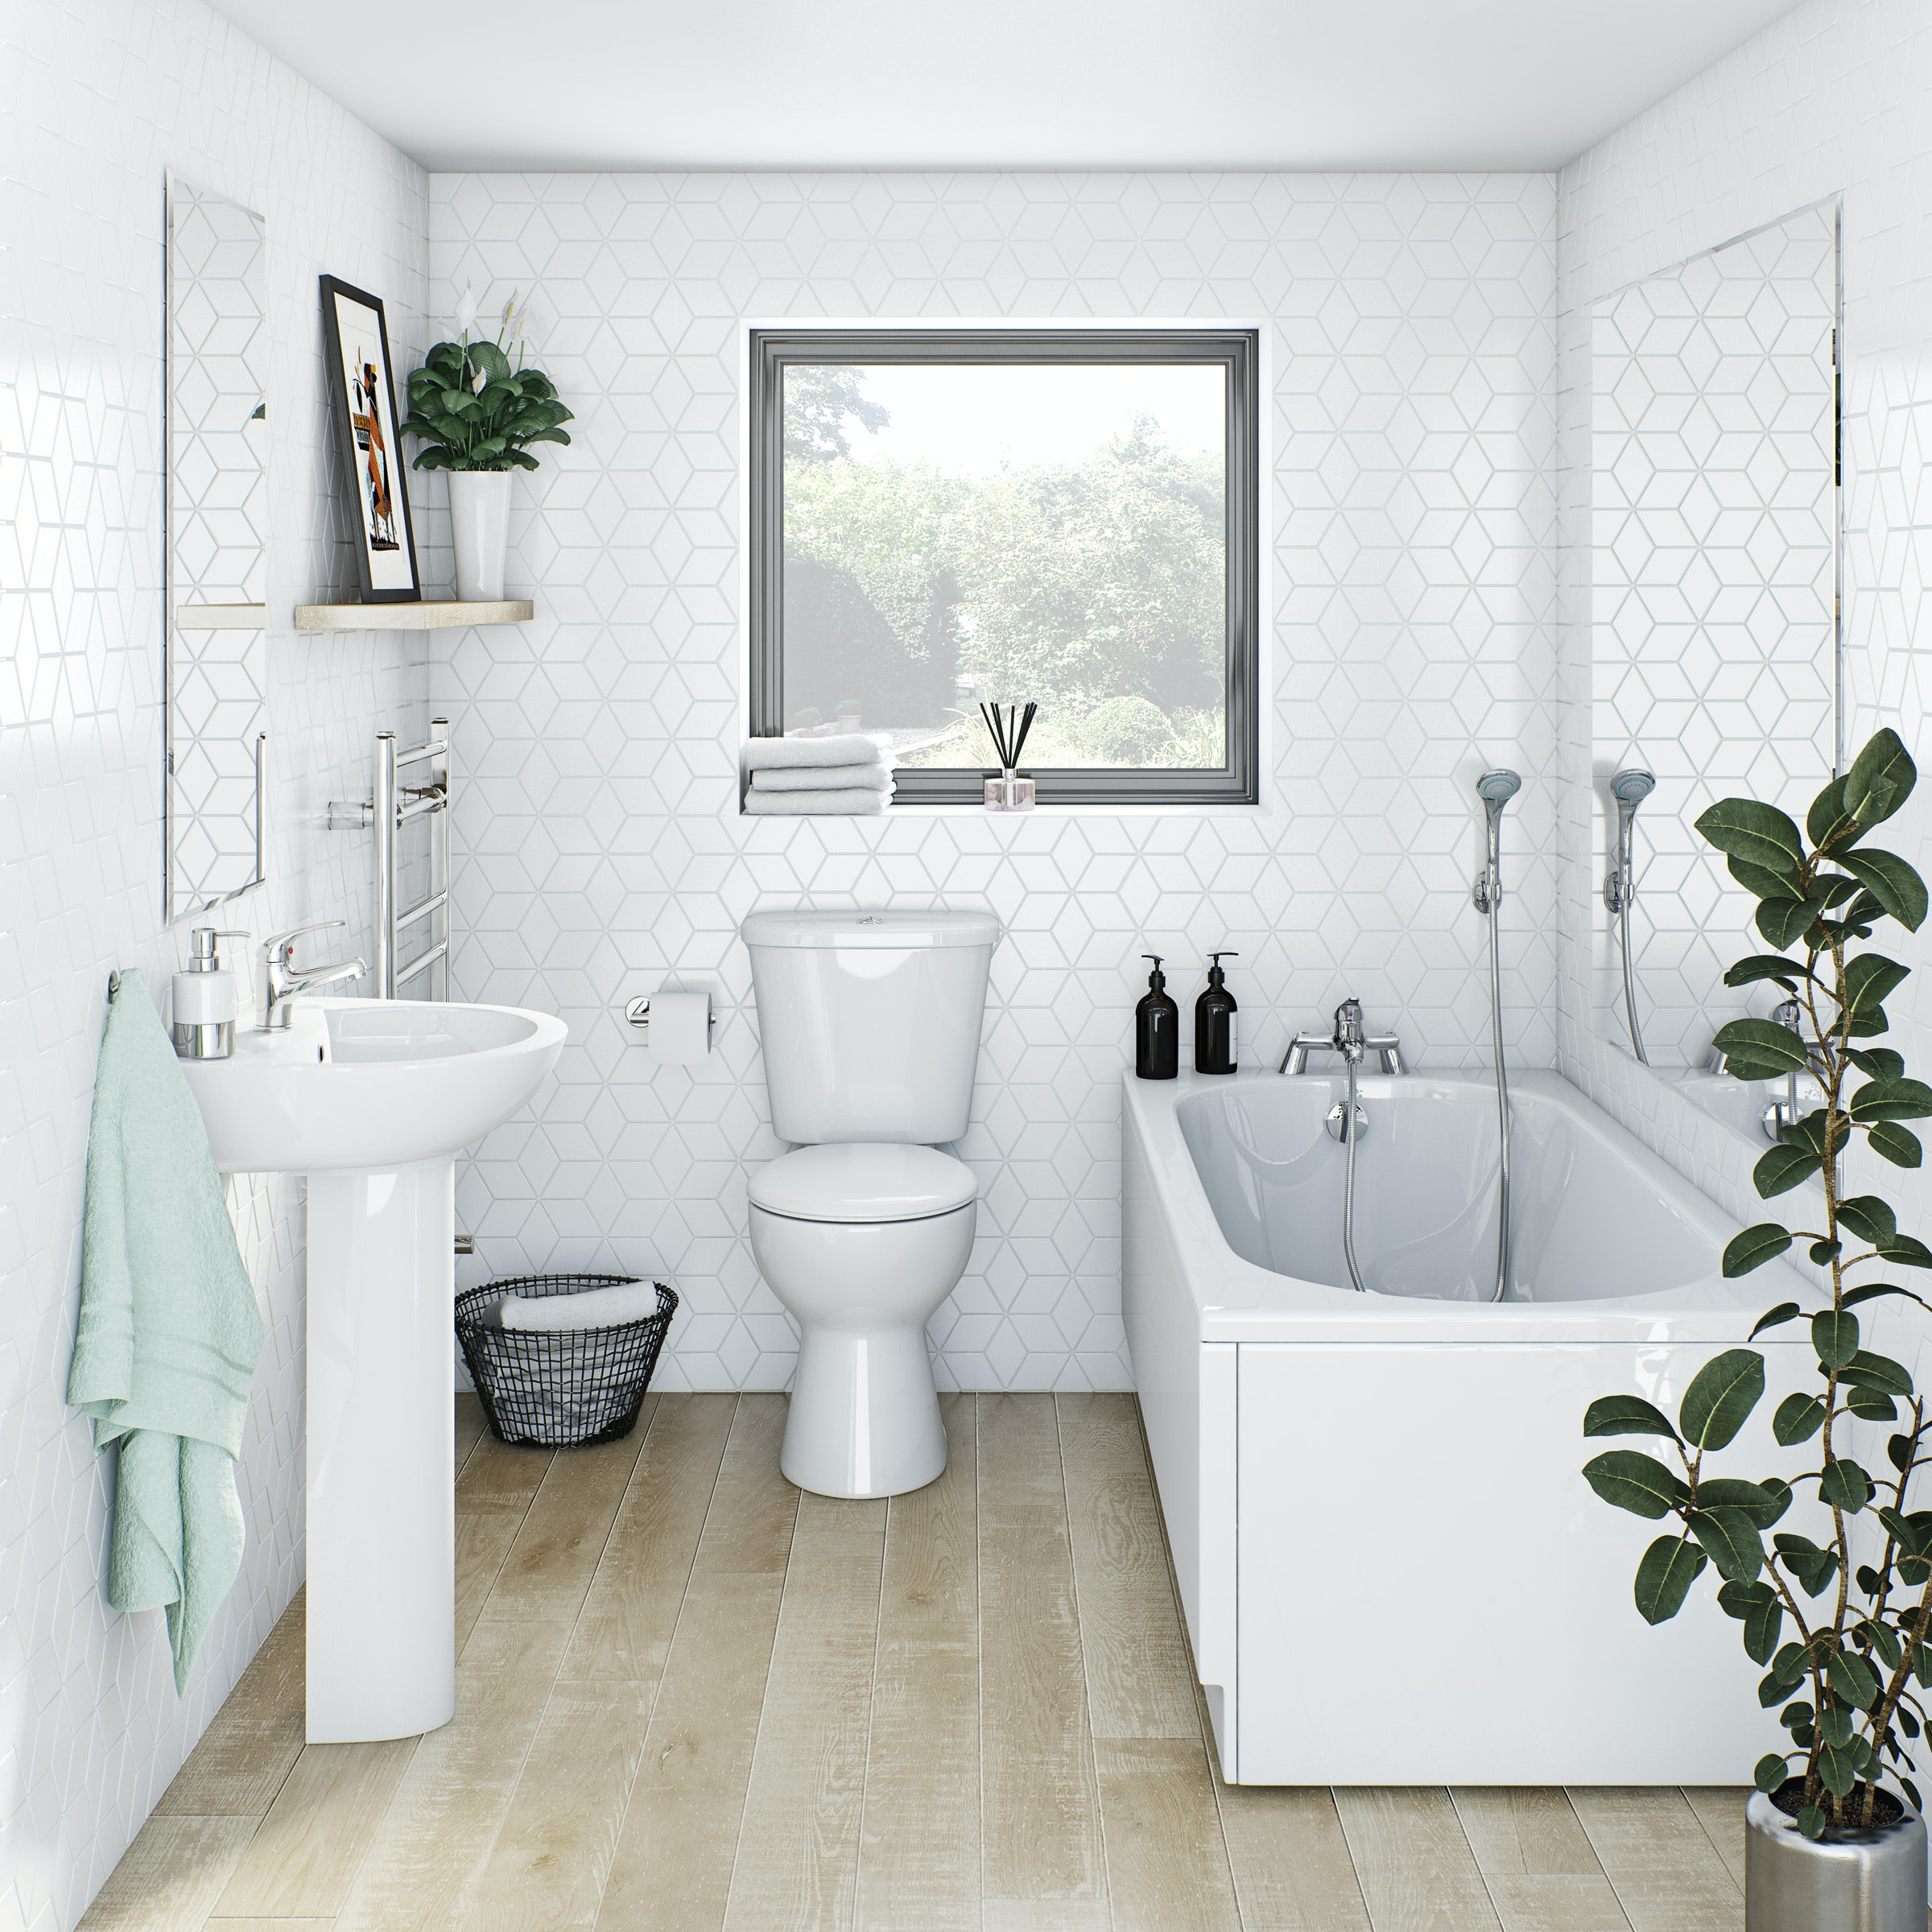 Clarity complete bathroom suite with straight bath, shower and taps